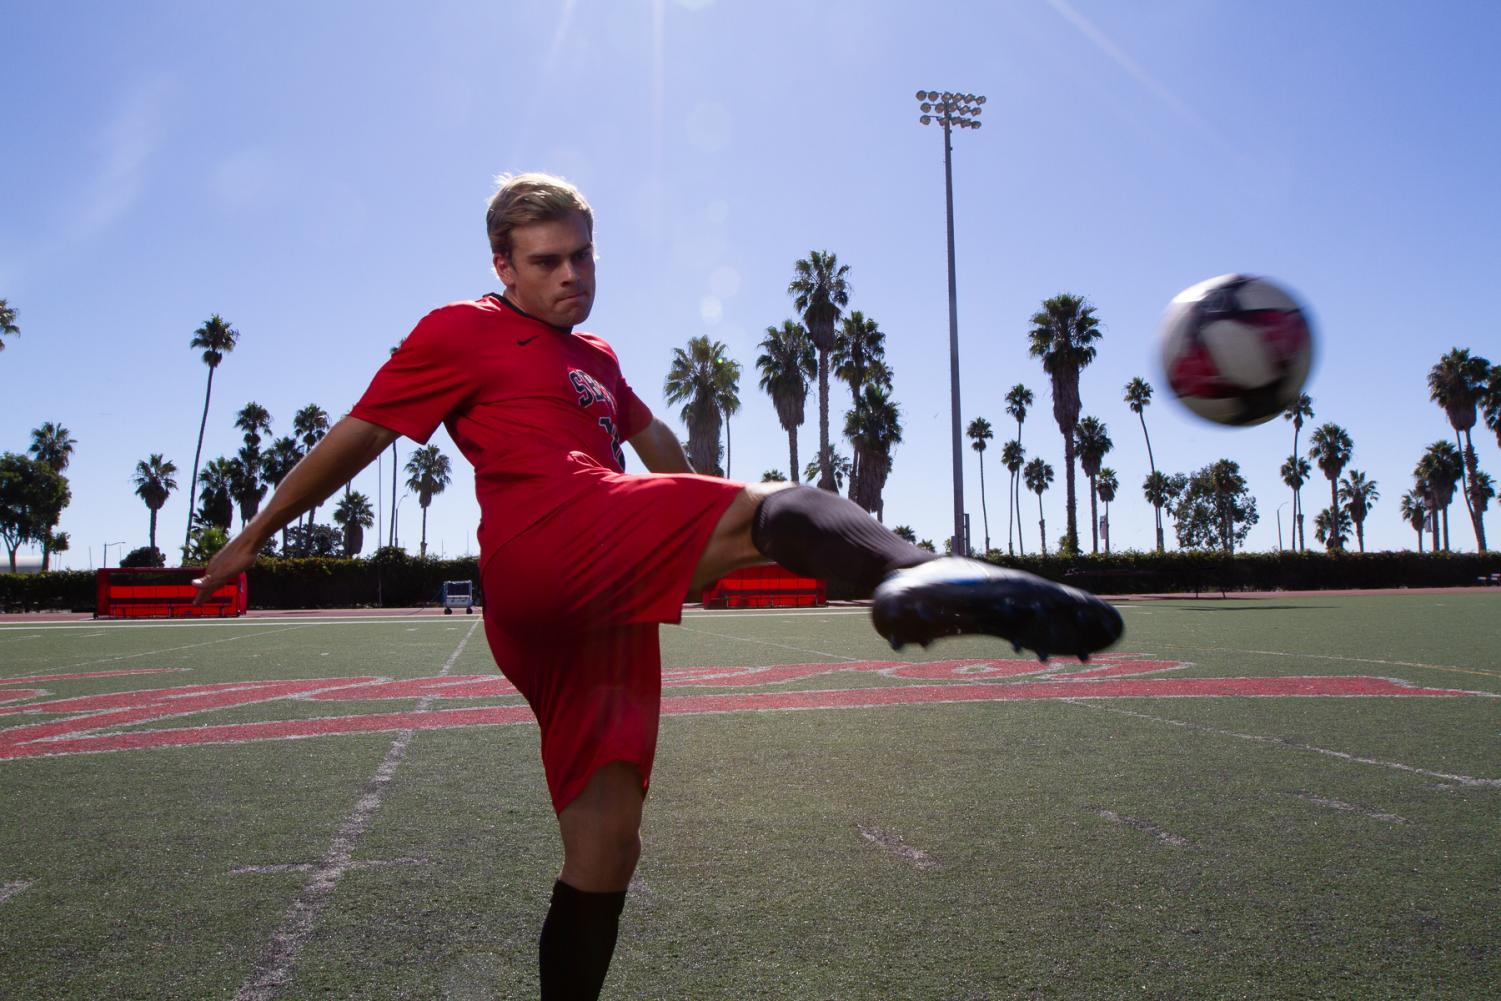 """Vaqueros forward Christopher Robinson from Dragonskolan High School in Umea kicks the ball on La Playa field on Wednesday, Oct. 25, 2019, at City College in Santa Barbara, Calif. """"We have to win,"""" said Robinson in reference to upcoming important games, """"it's make it or break it now."""""""